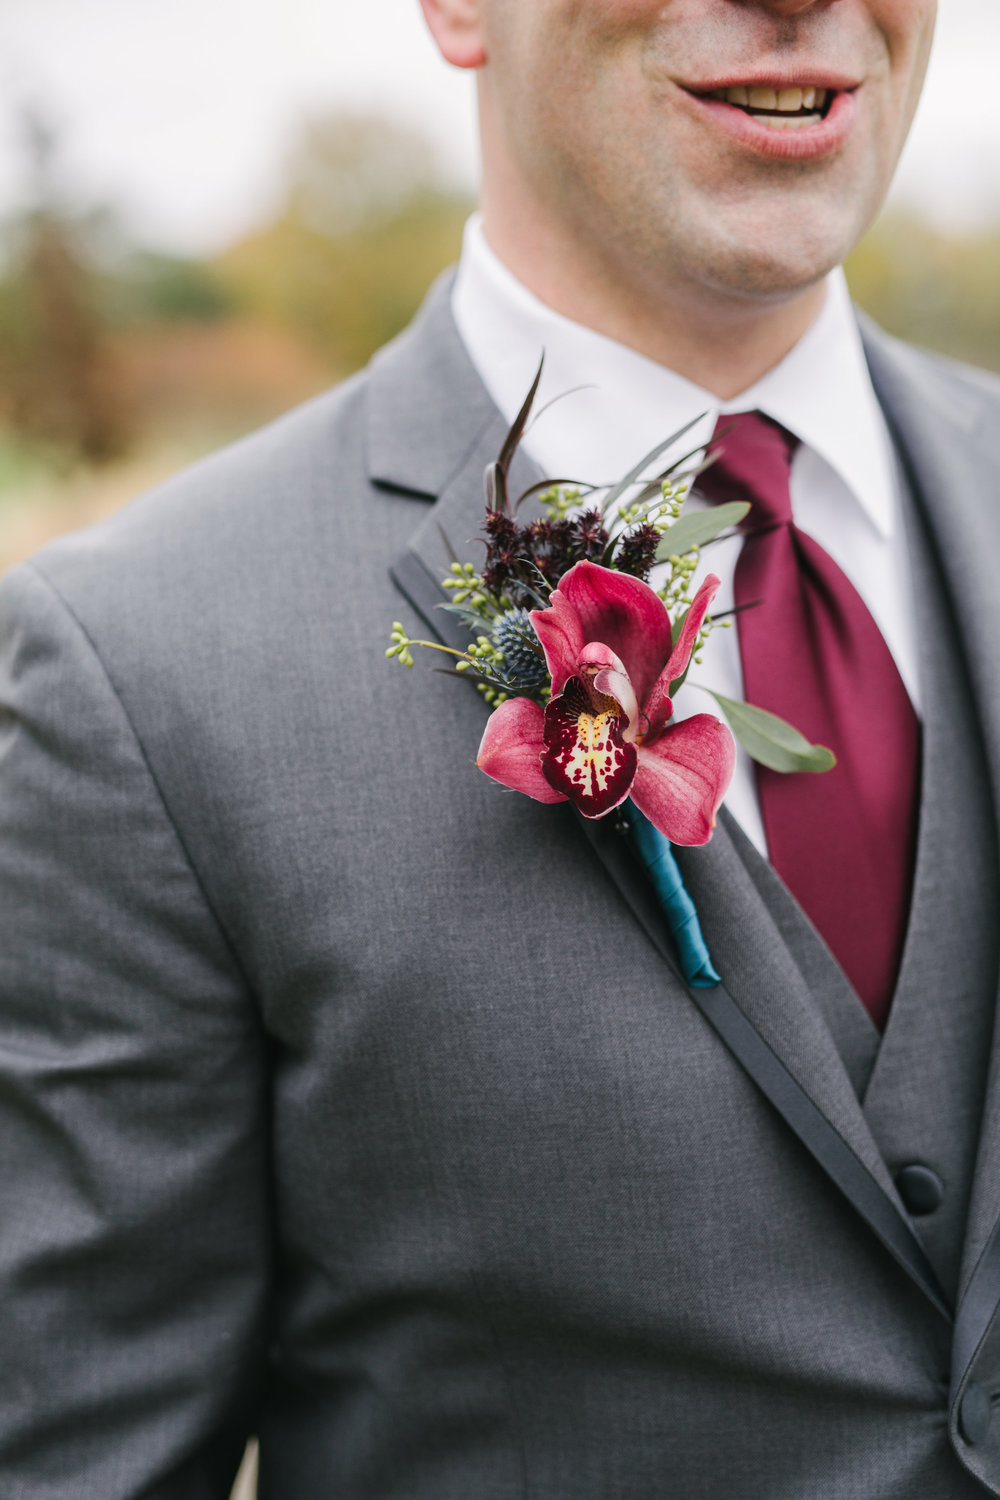 Jewed Toned Wedding Boutonnieres